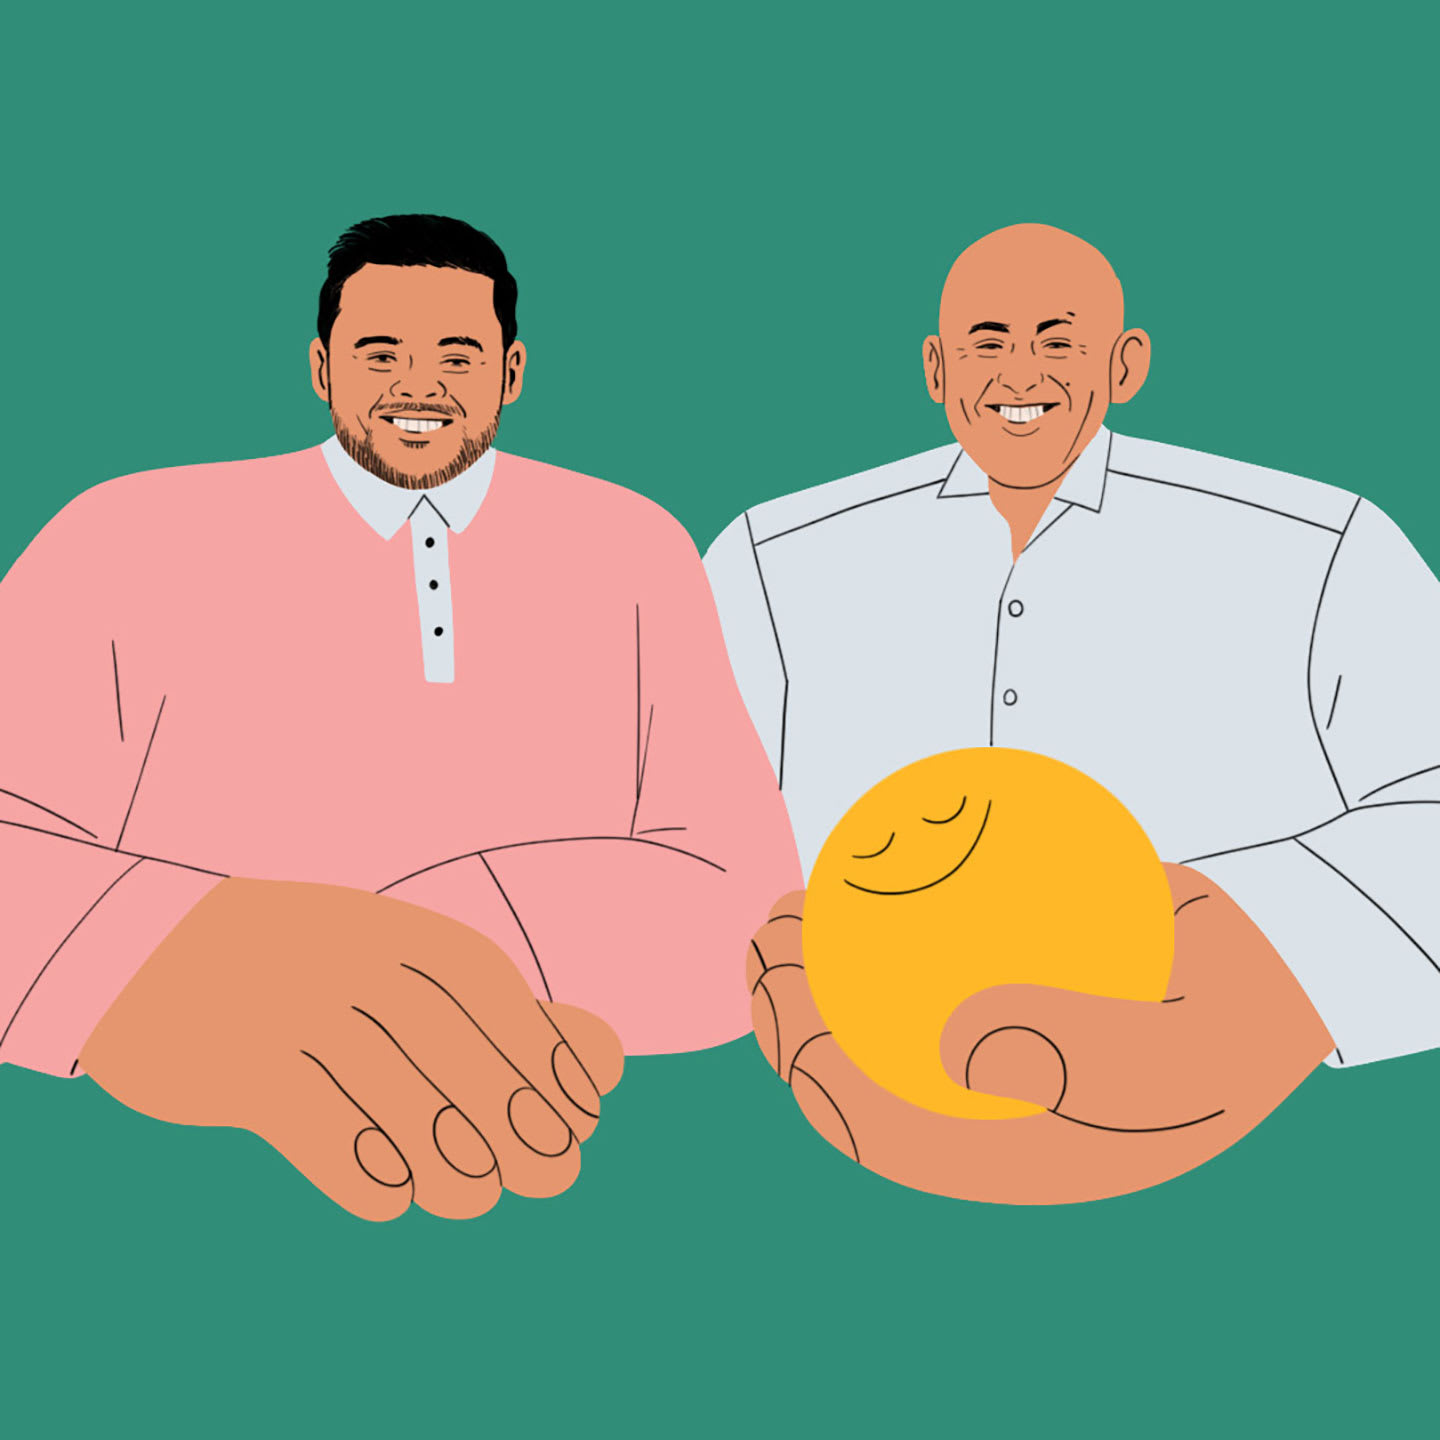 An illustration of two men with big hands, one of which is holding a stress ball.